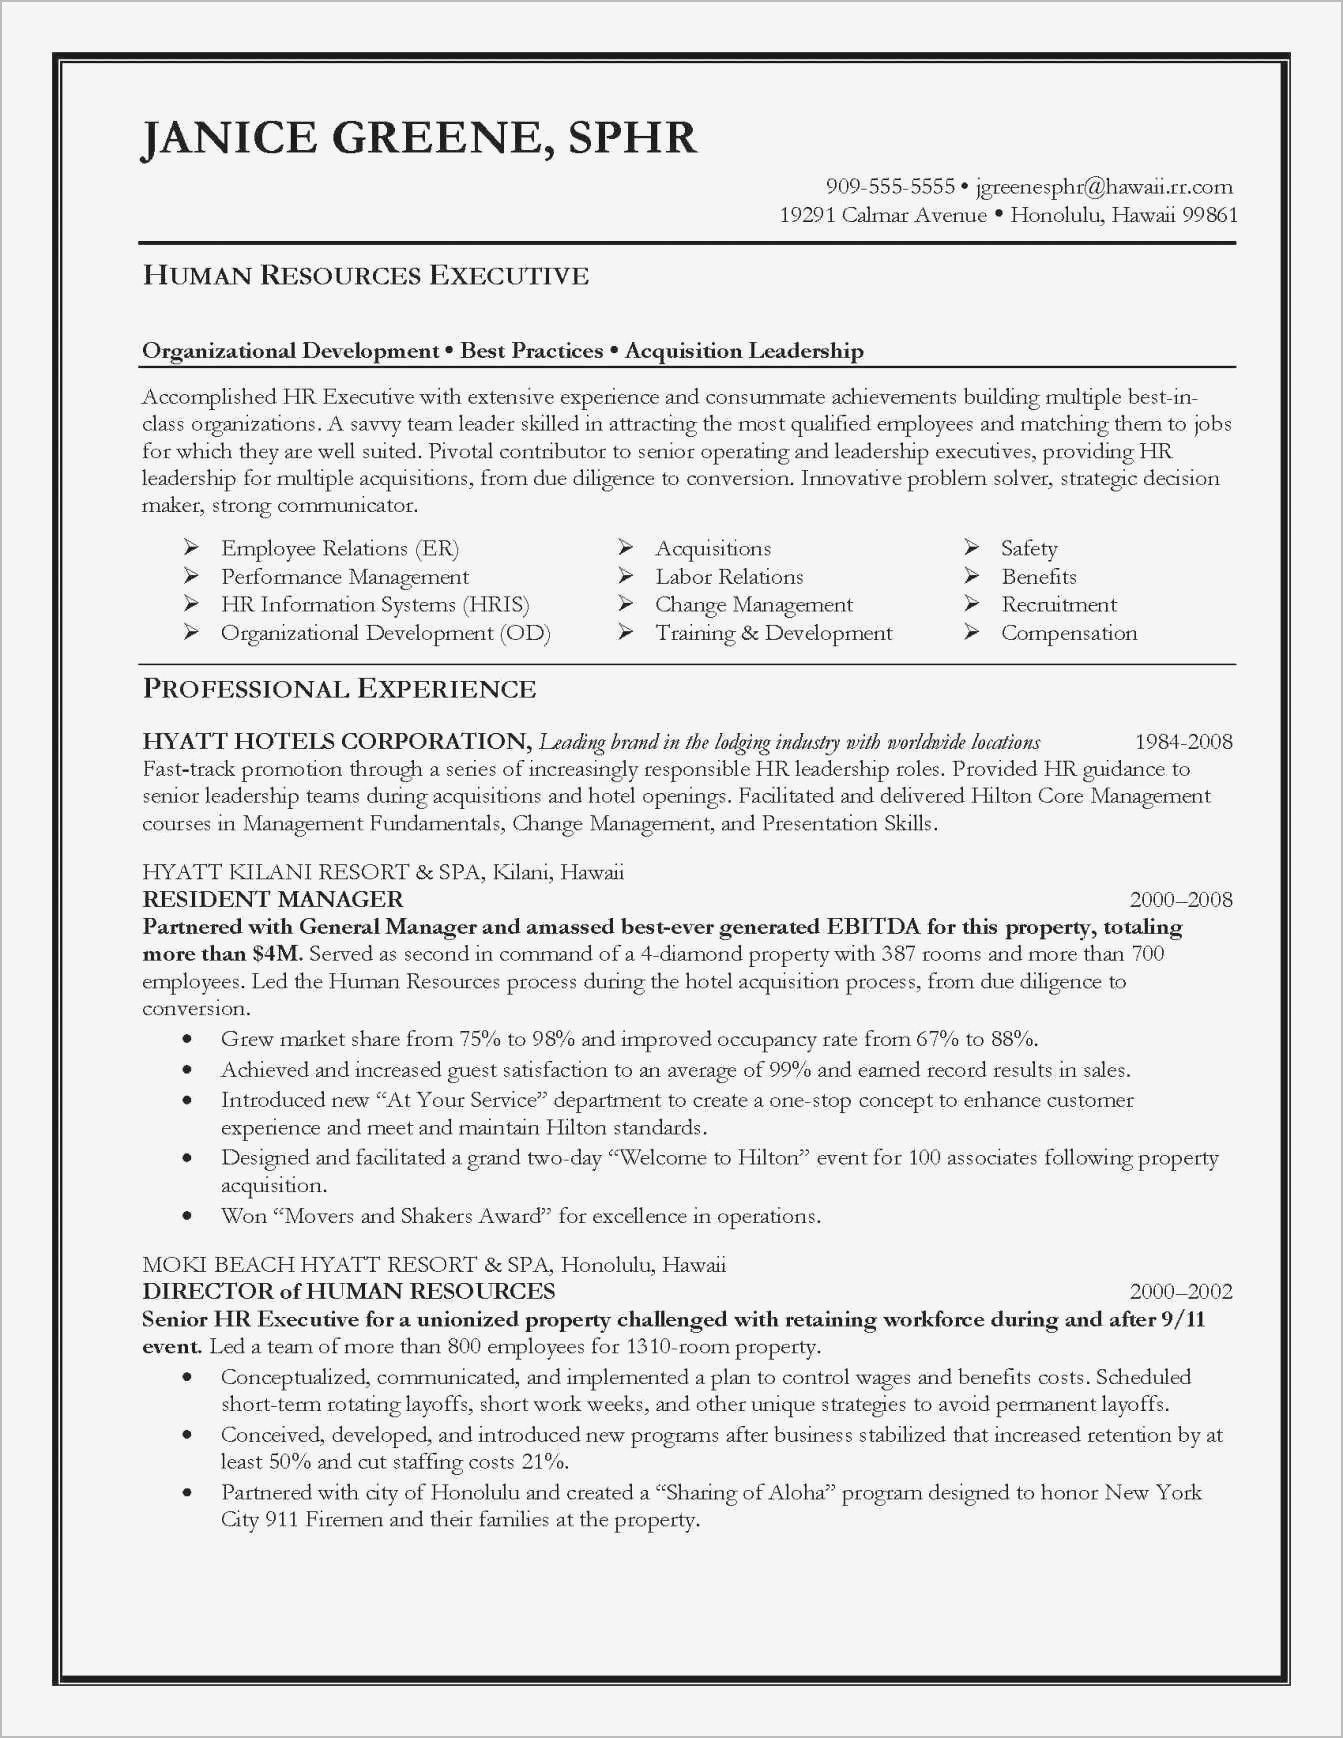 Masters Degree On Resume - Things to Include A Resume Inspirational Masters Degree Resume